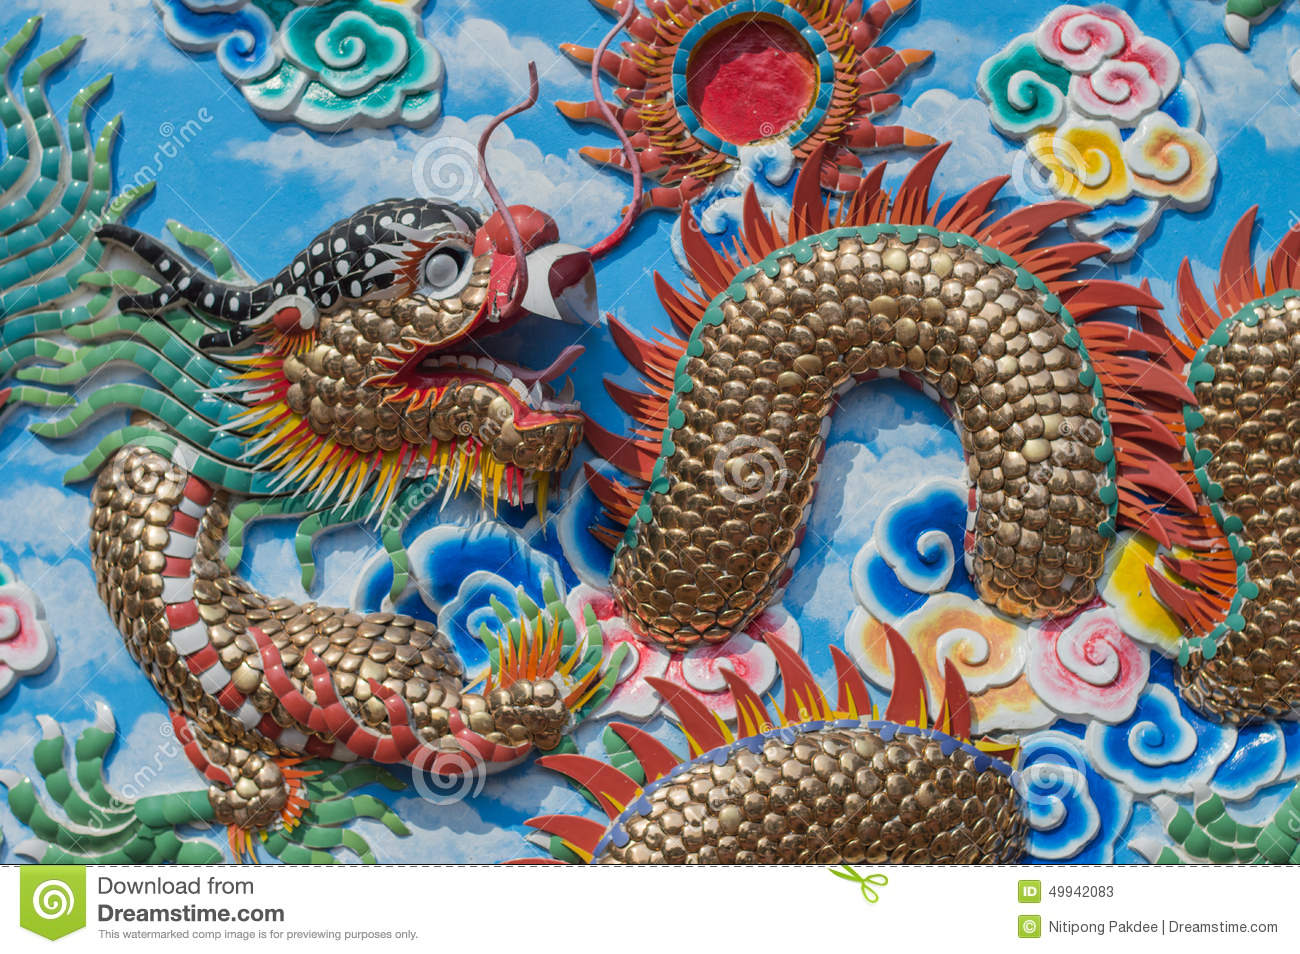 Mural painting dragon art wall and wallpaper background for Art mural wallpaper